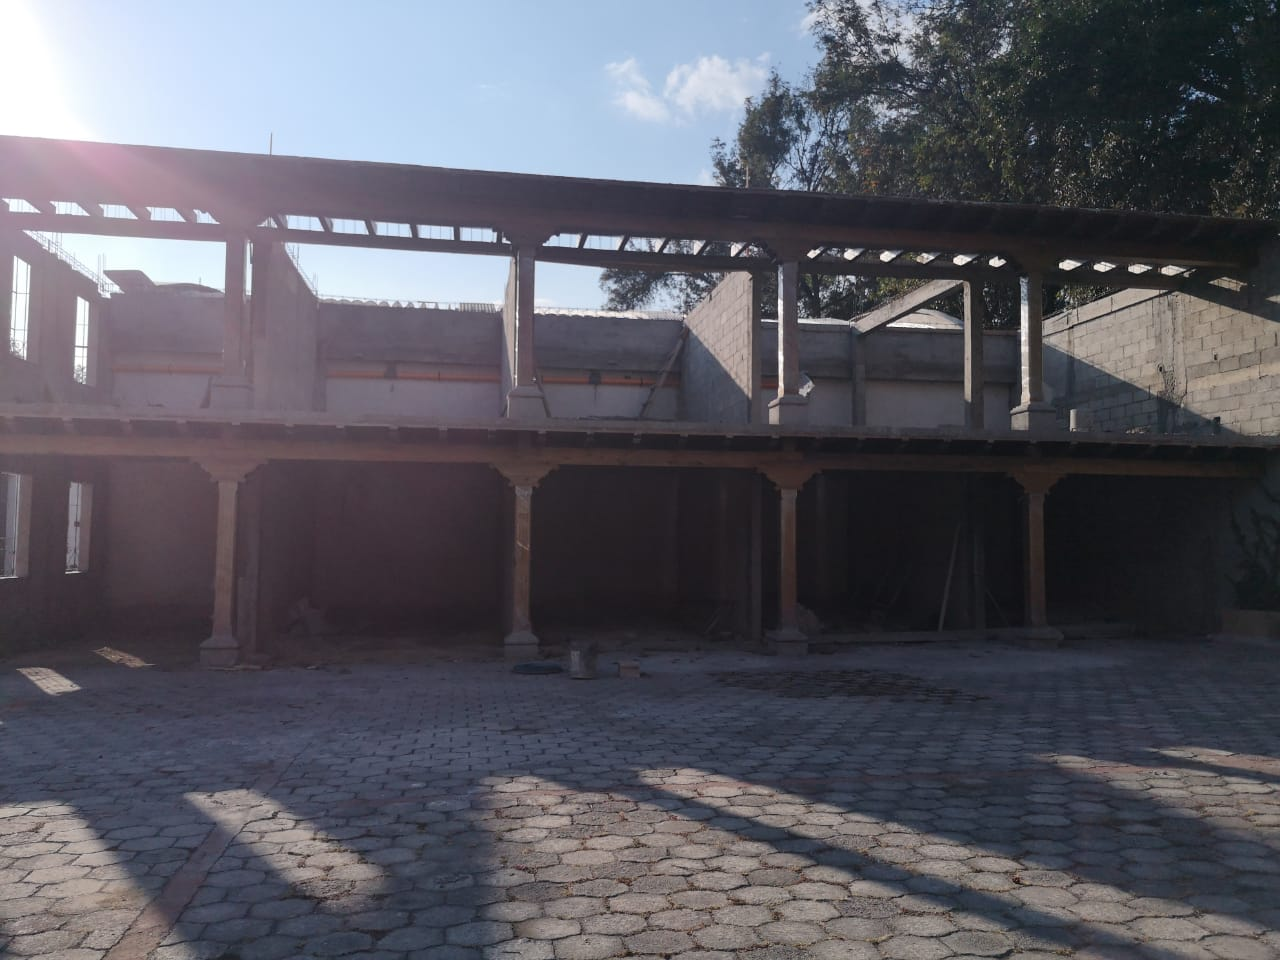 4660 WAREHOUSE FOR RENT CLOSE TO CENTRAL ANTIGUA (From: 9m2. Under construction) (Jb)